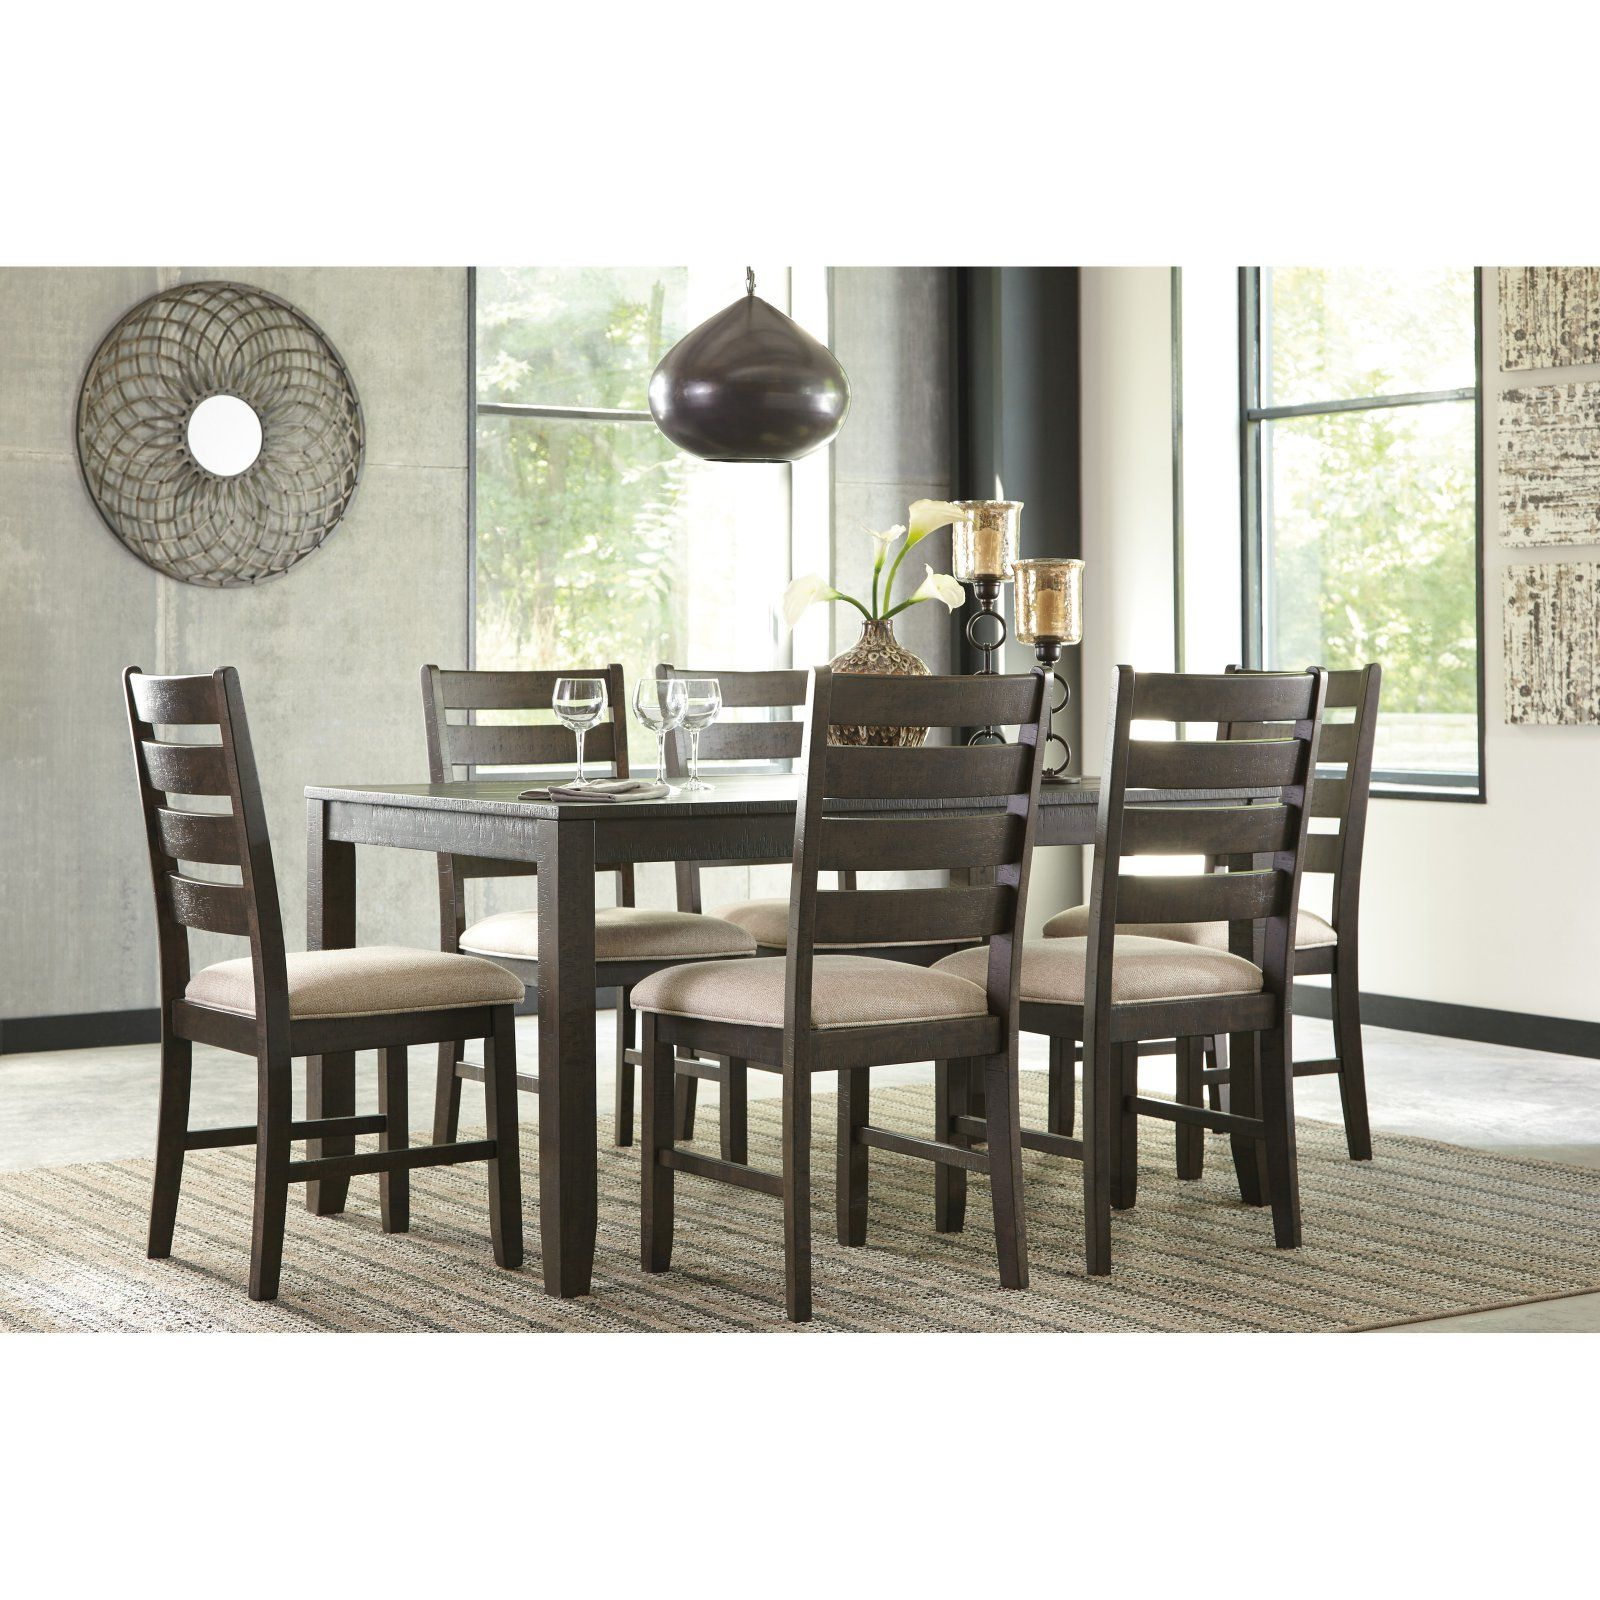 Signature Design By Ashley Rokane 7 Piece Dining Table Set